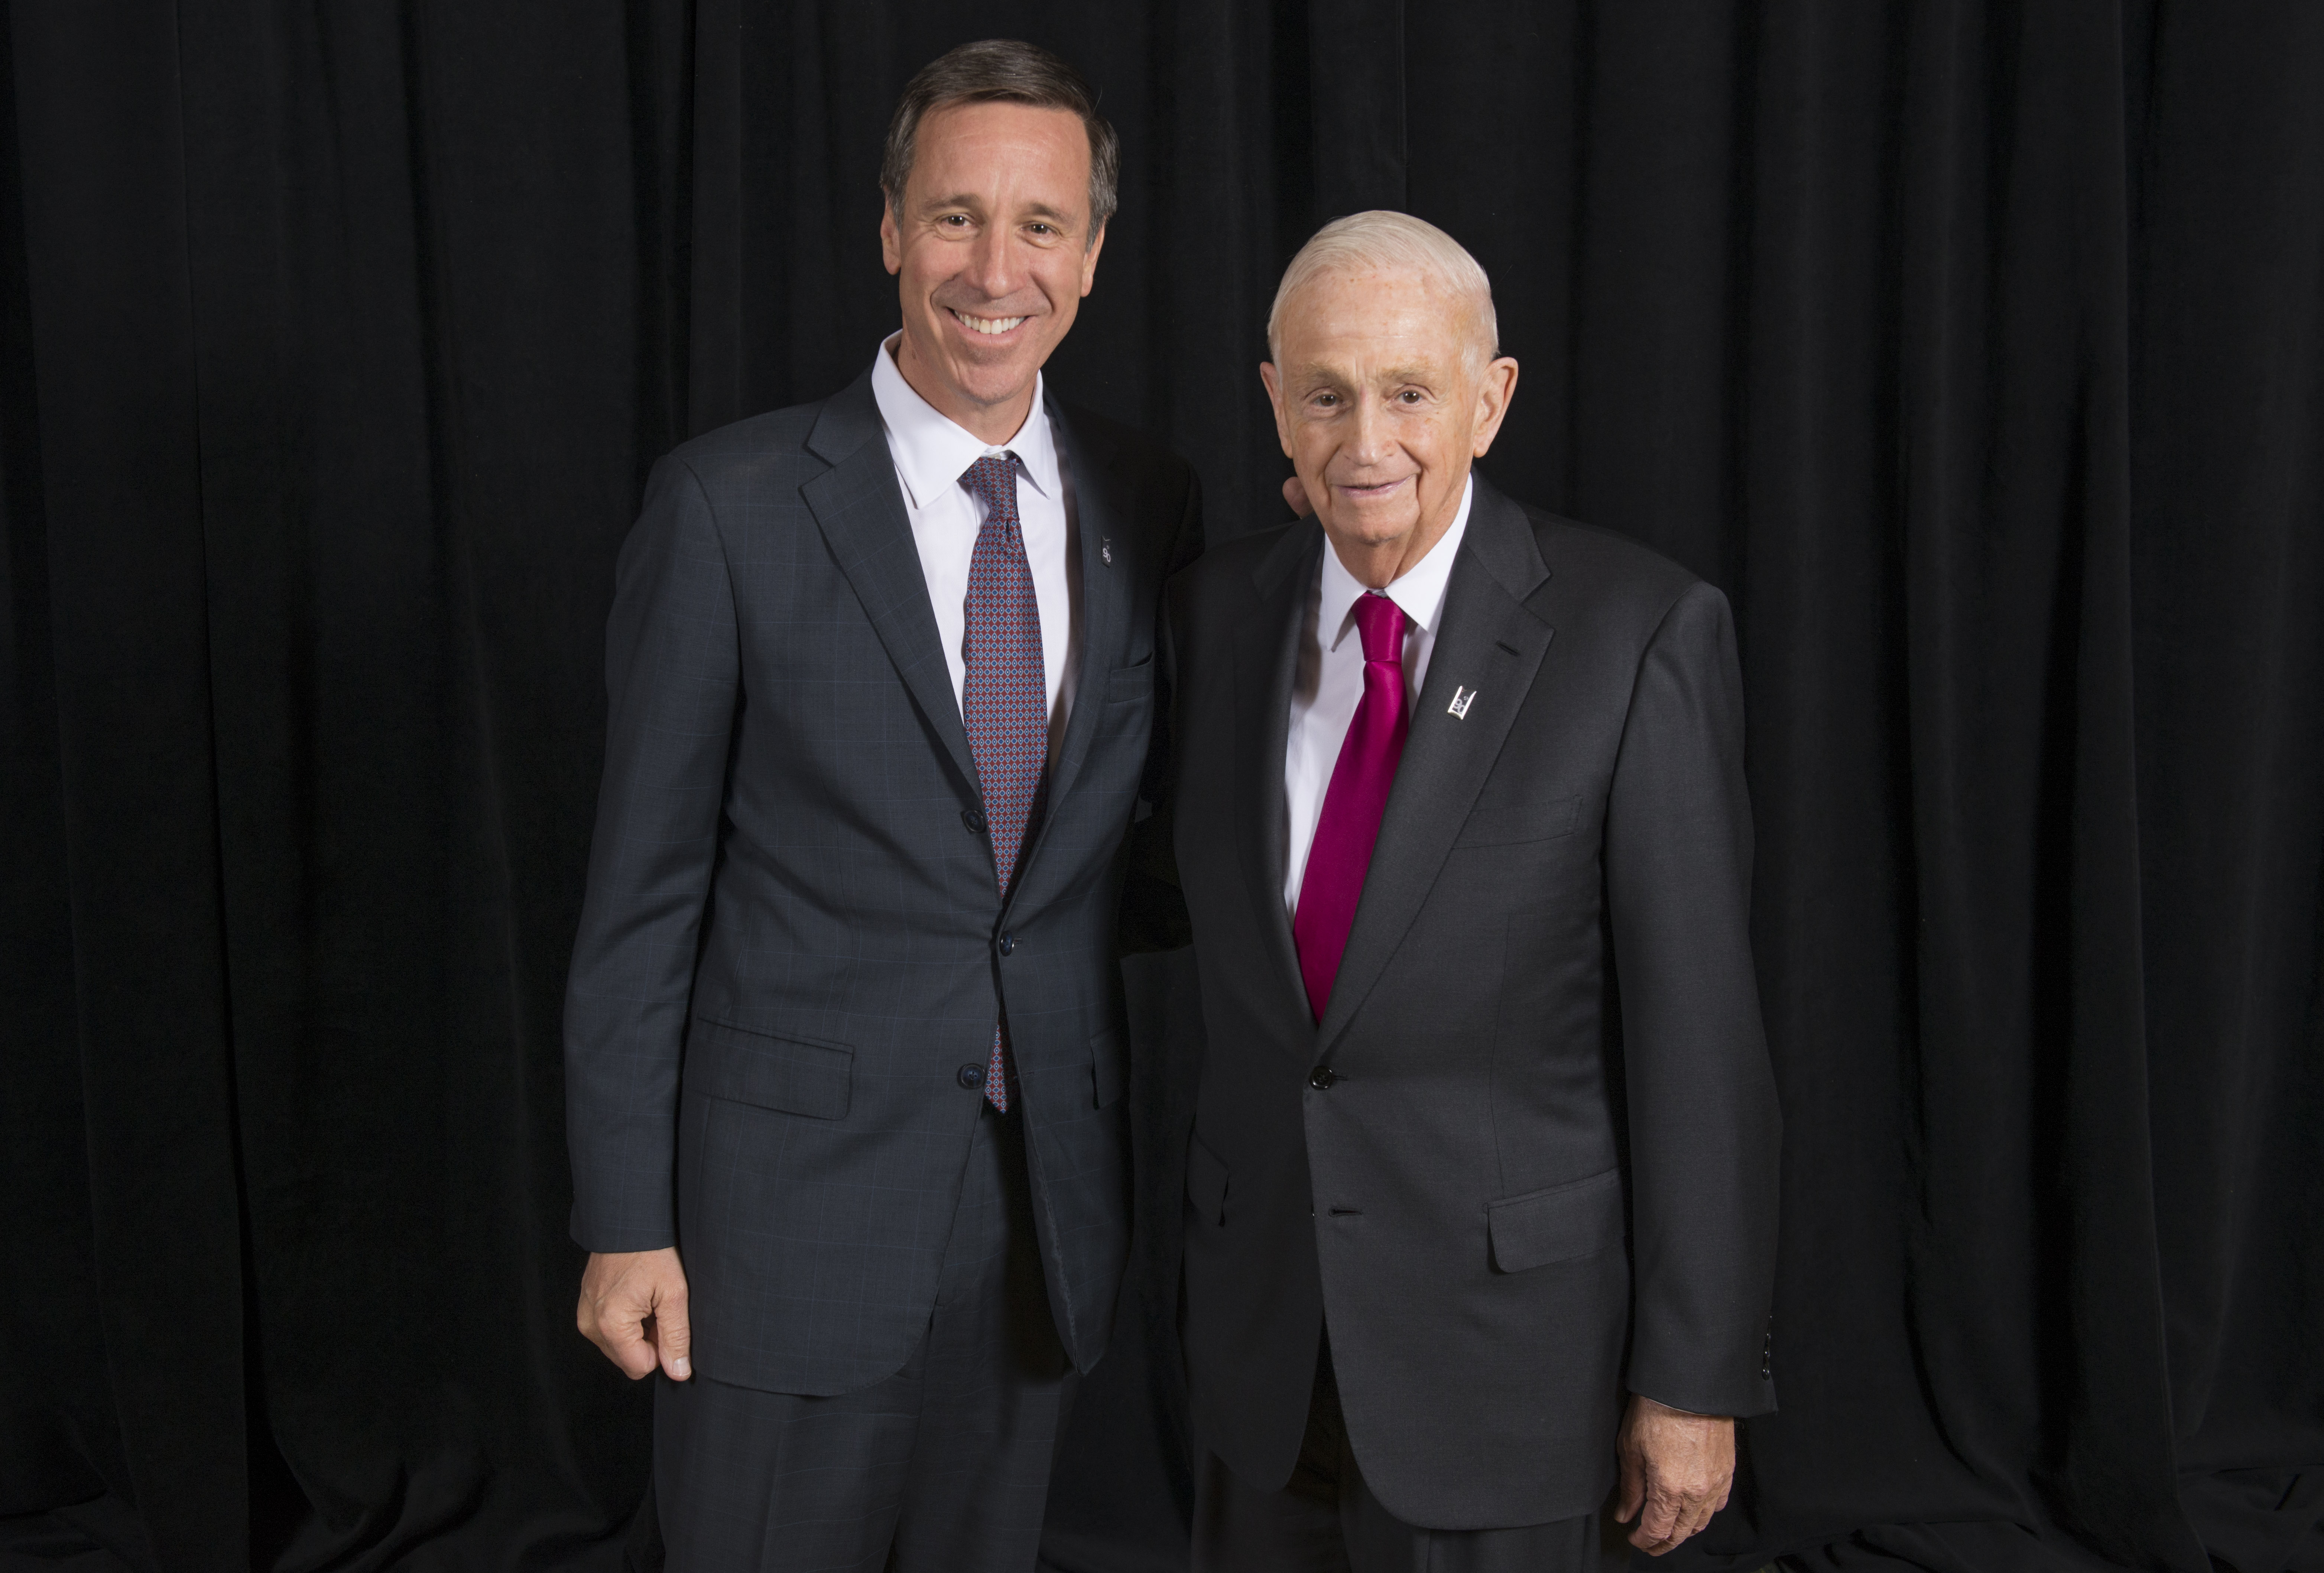 Bill Marriott has said one his wisest decisions was choosing Arne Sorenson to succeed him as CEO.